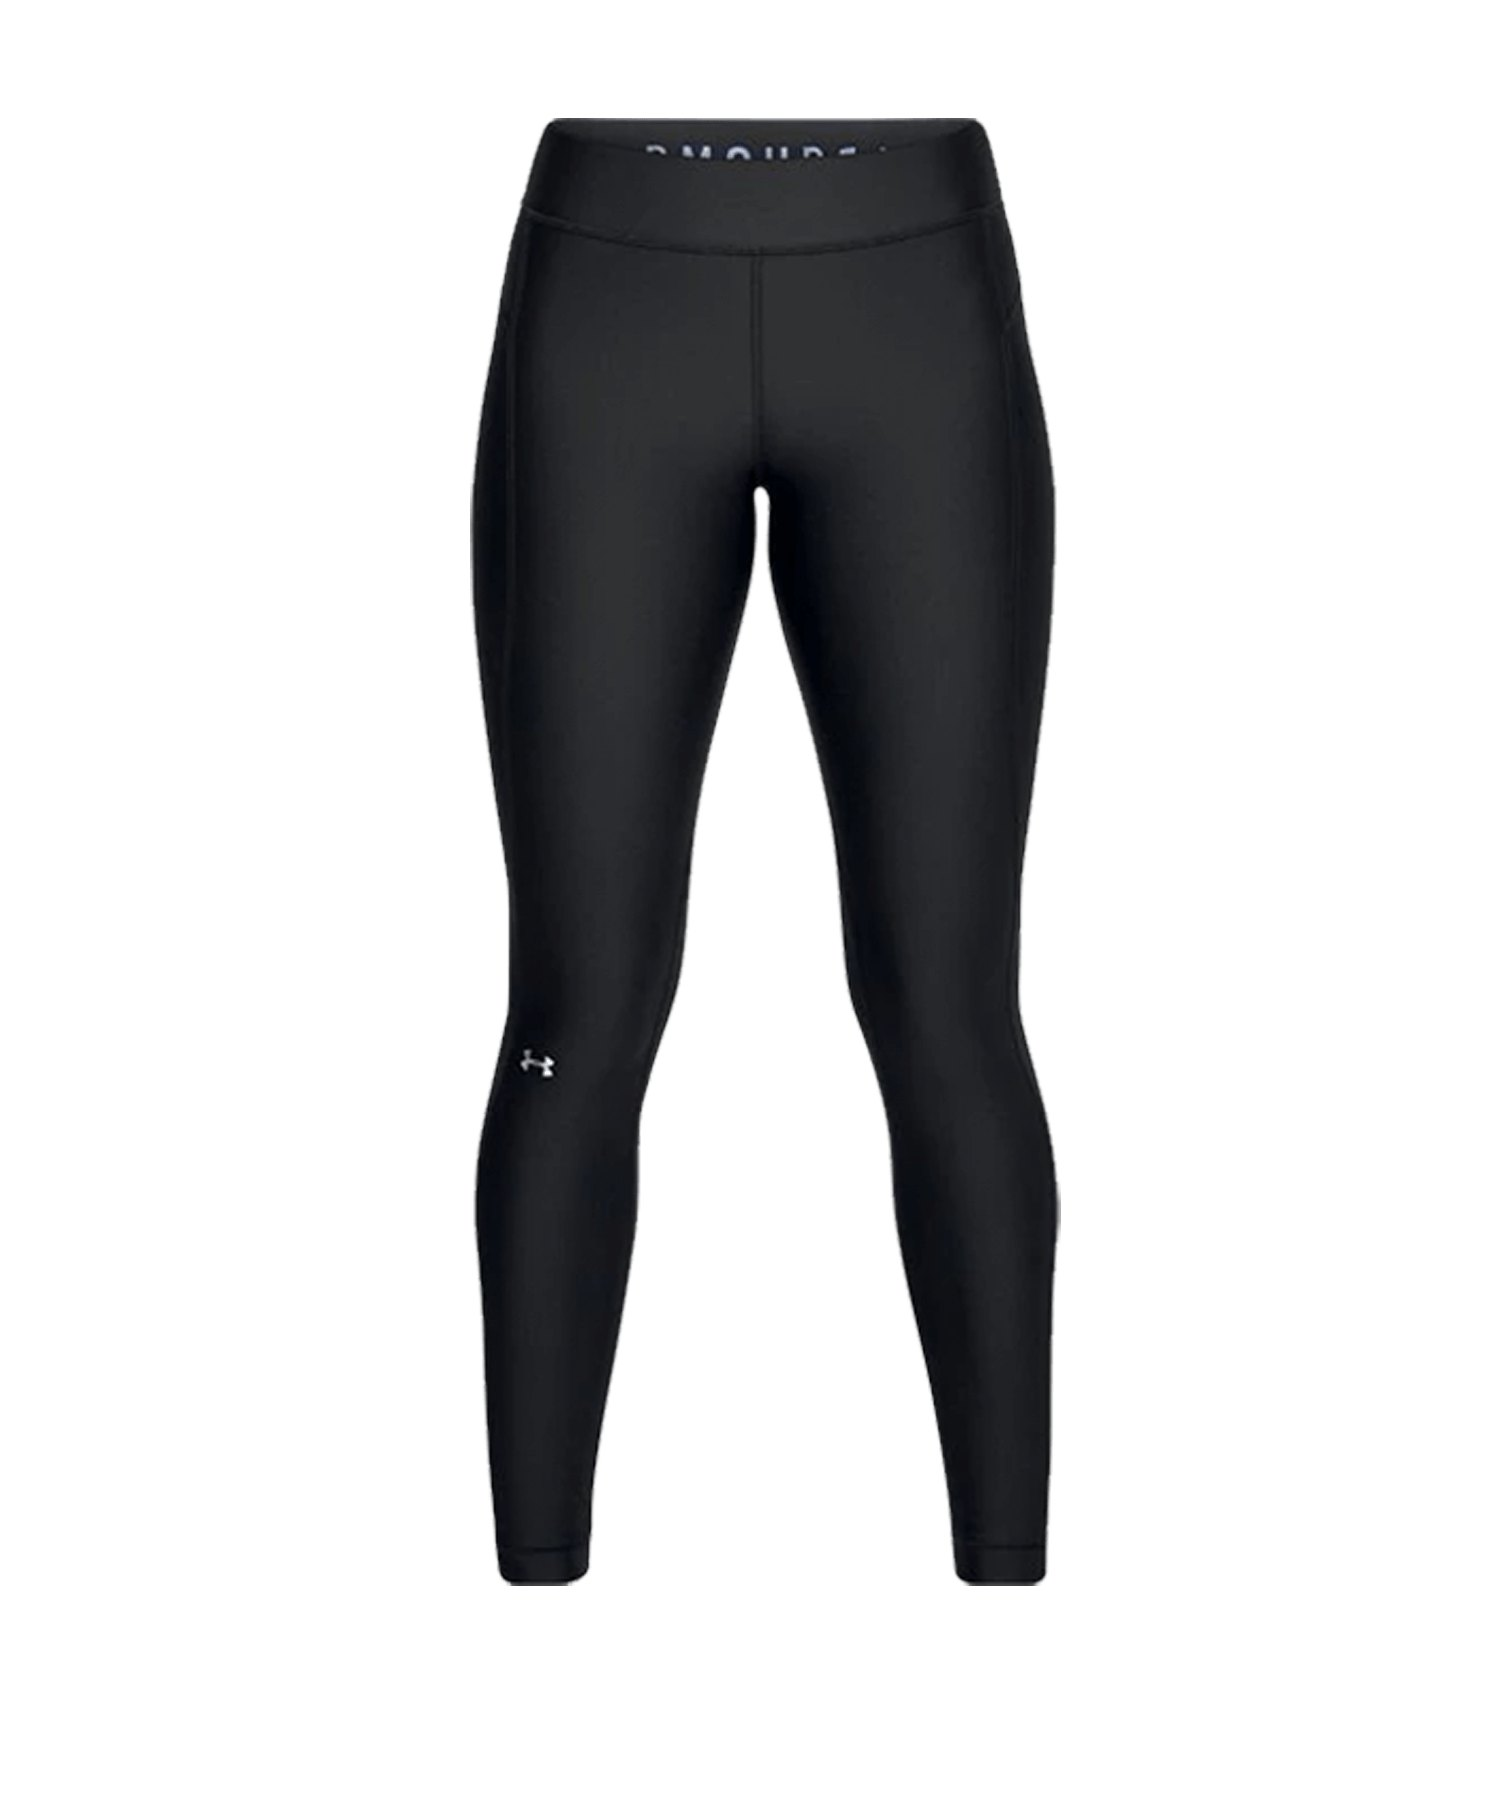 Under Armour HG Legging Damen Schwarz F001 - schwarz